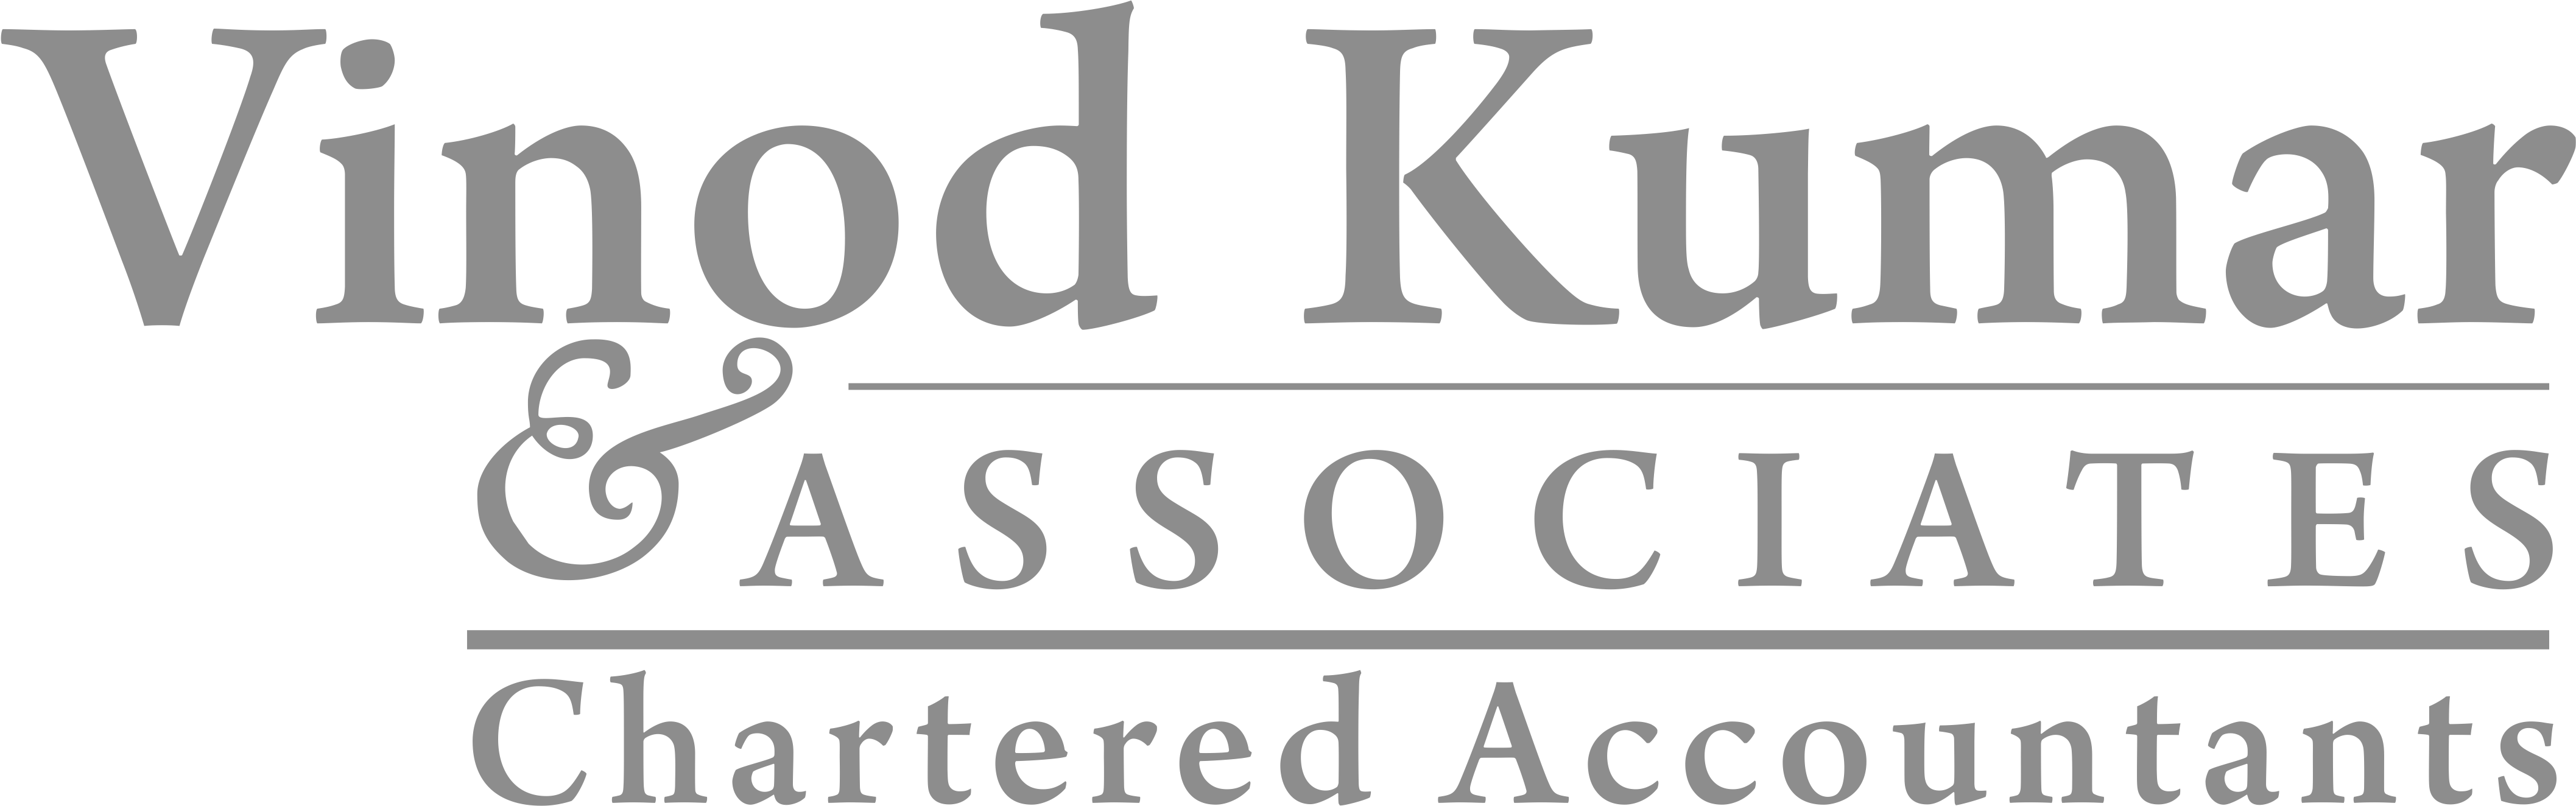 Vinod Kumar & Associates Chartered Accountants